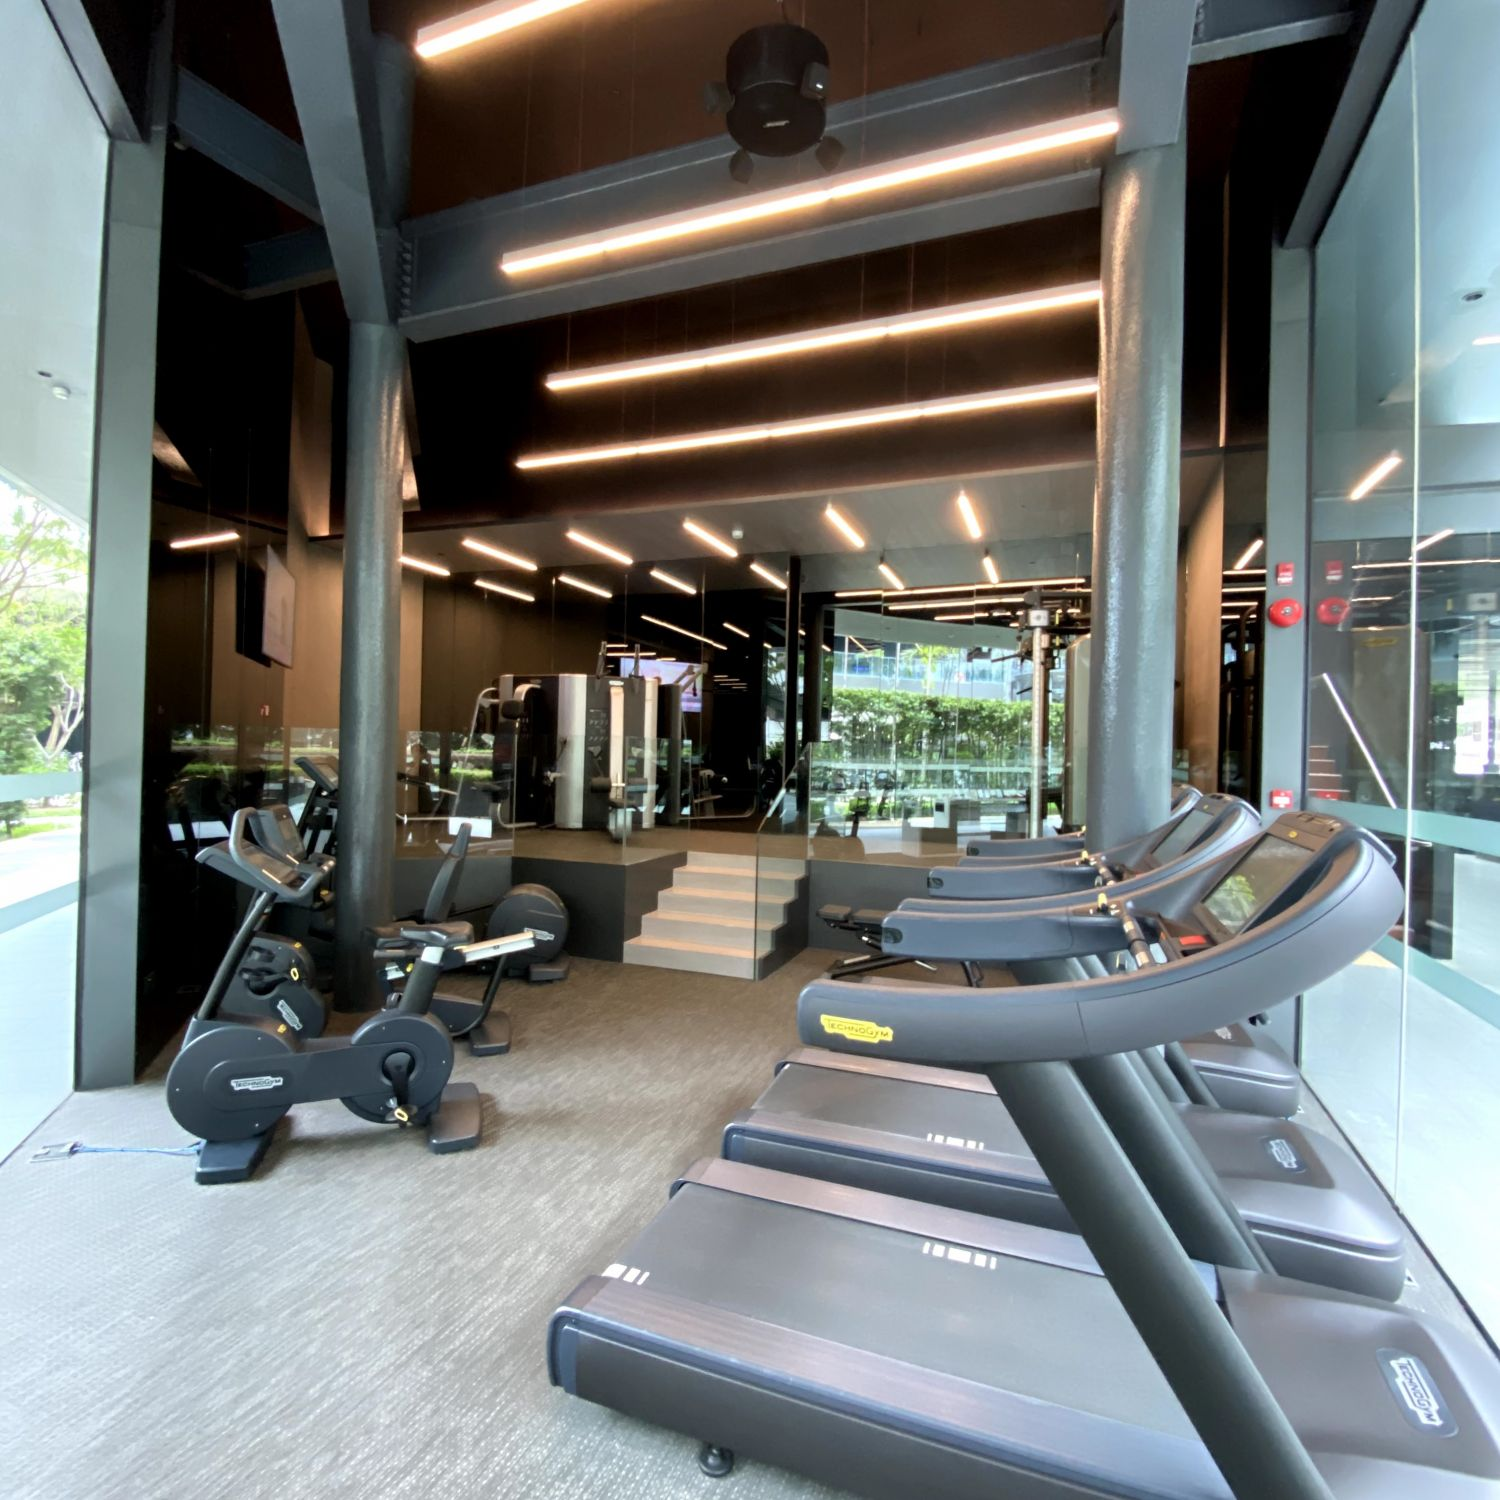 InterContinental Singapore Robertson Quay fitness centre